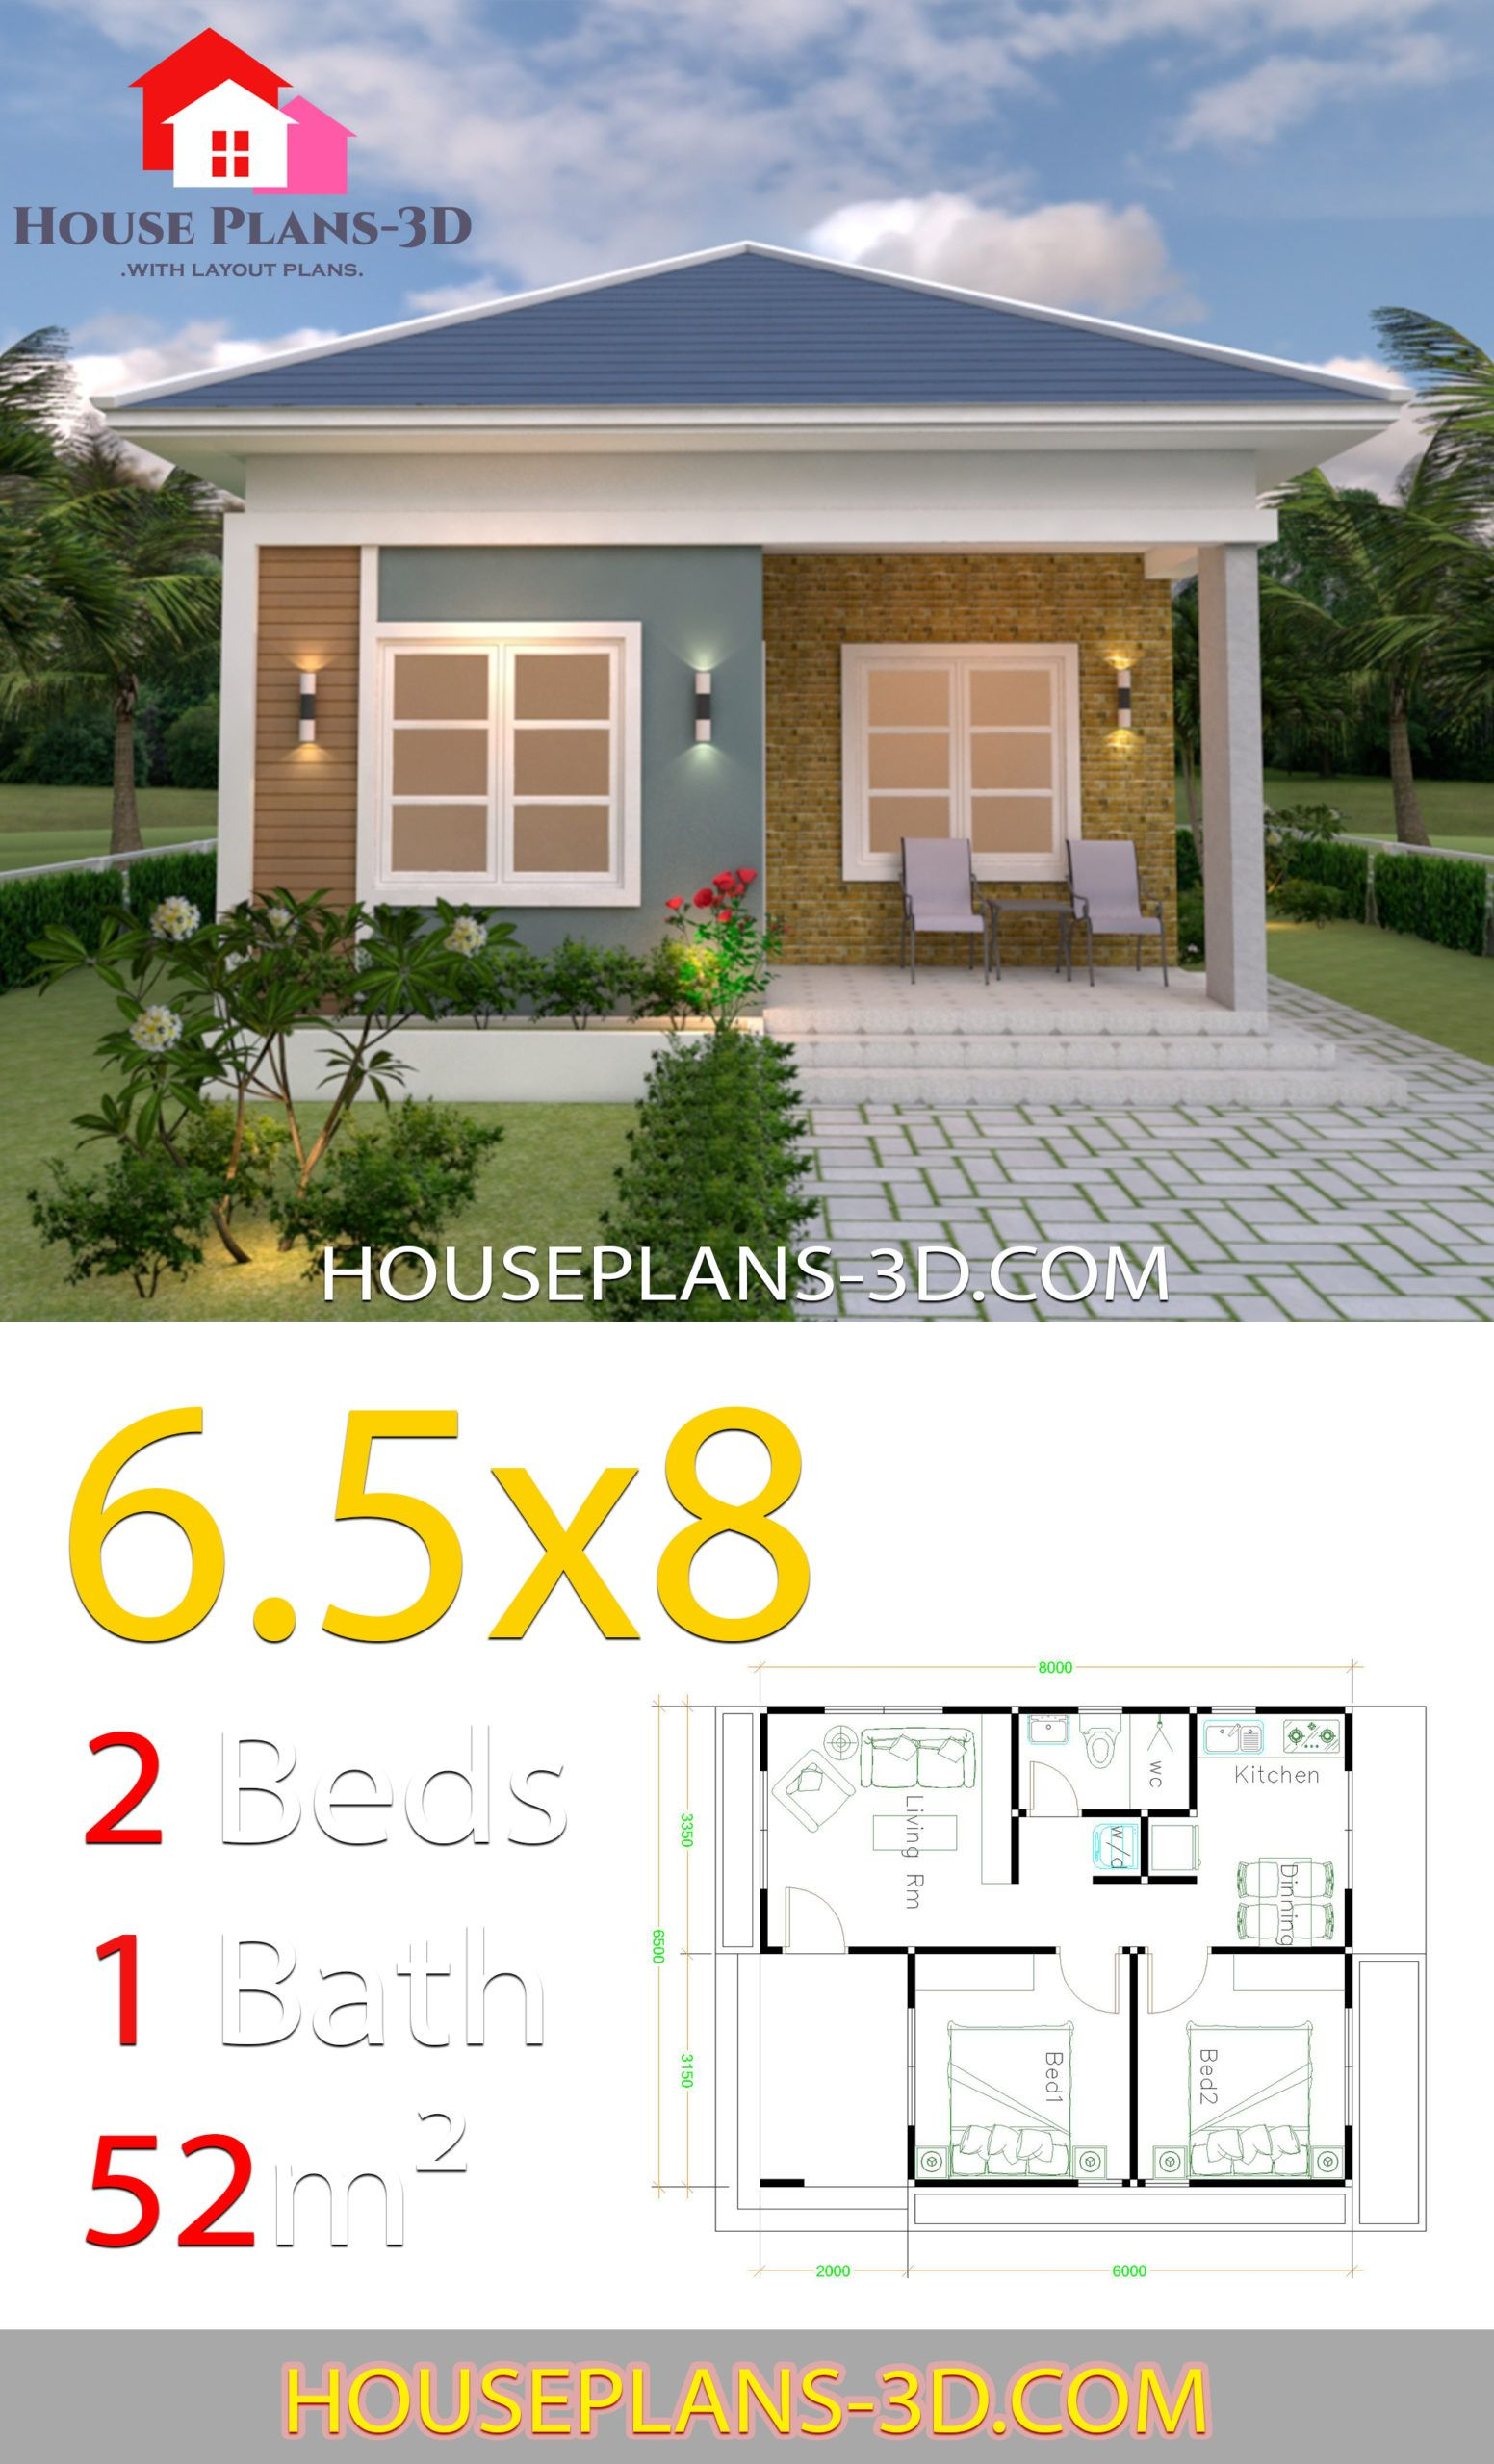 House Design Plans 6 5x8 With 2 Bedrooms Hip Roof House Plans 3d House Plans House Designs Exterior Home Design Plans